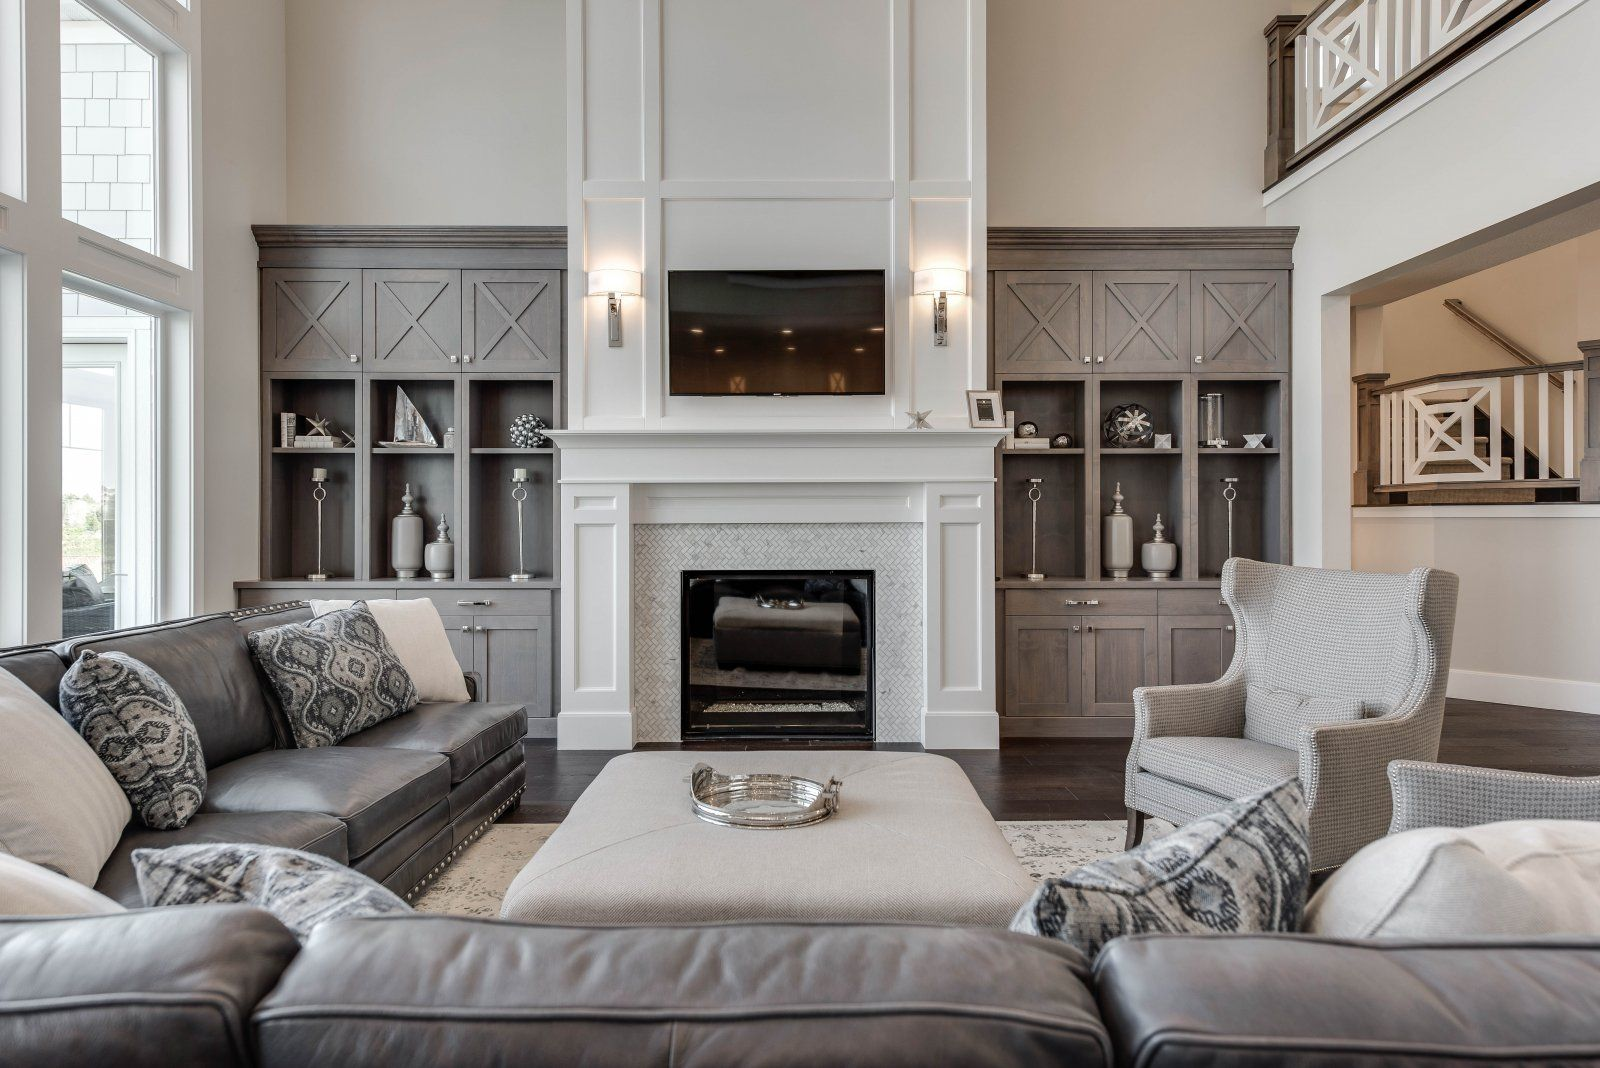 Salt Lake Parade of Homes  rooms  Living room with